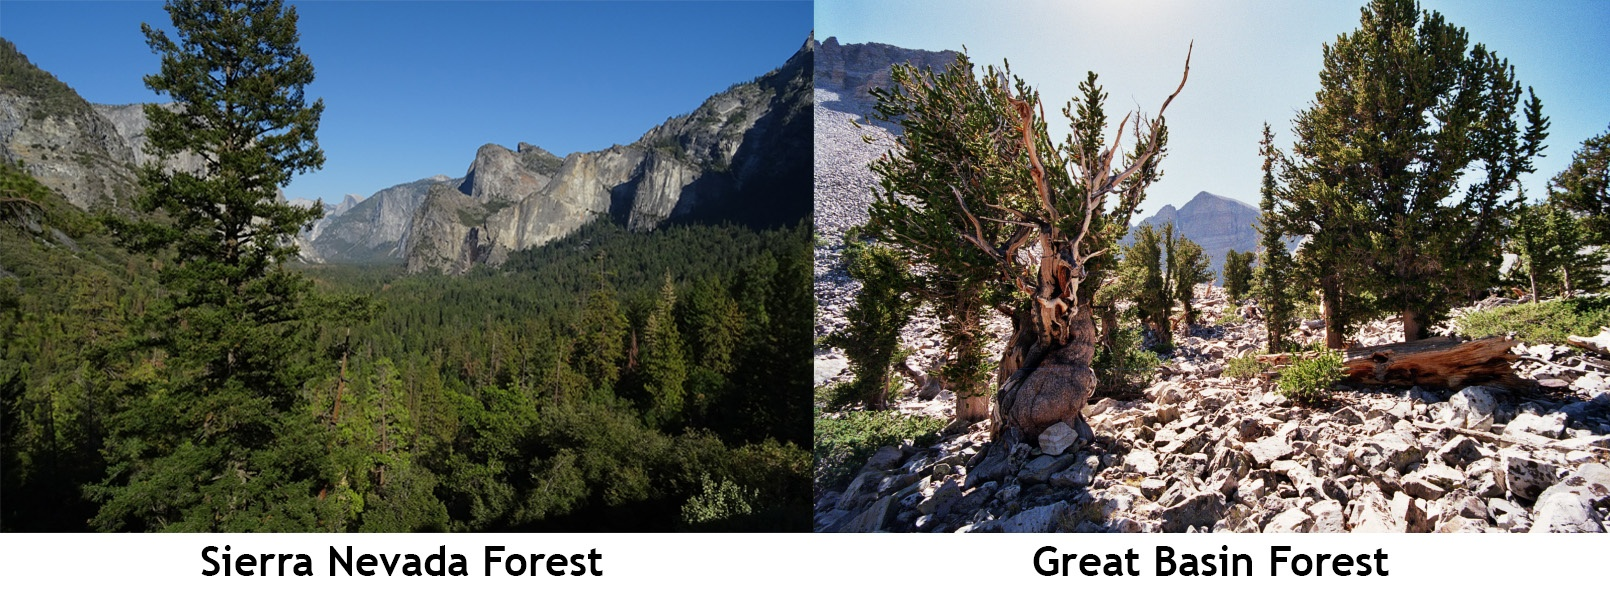 california sierra nevada and great basin forests